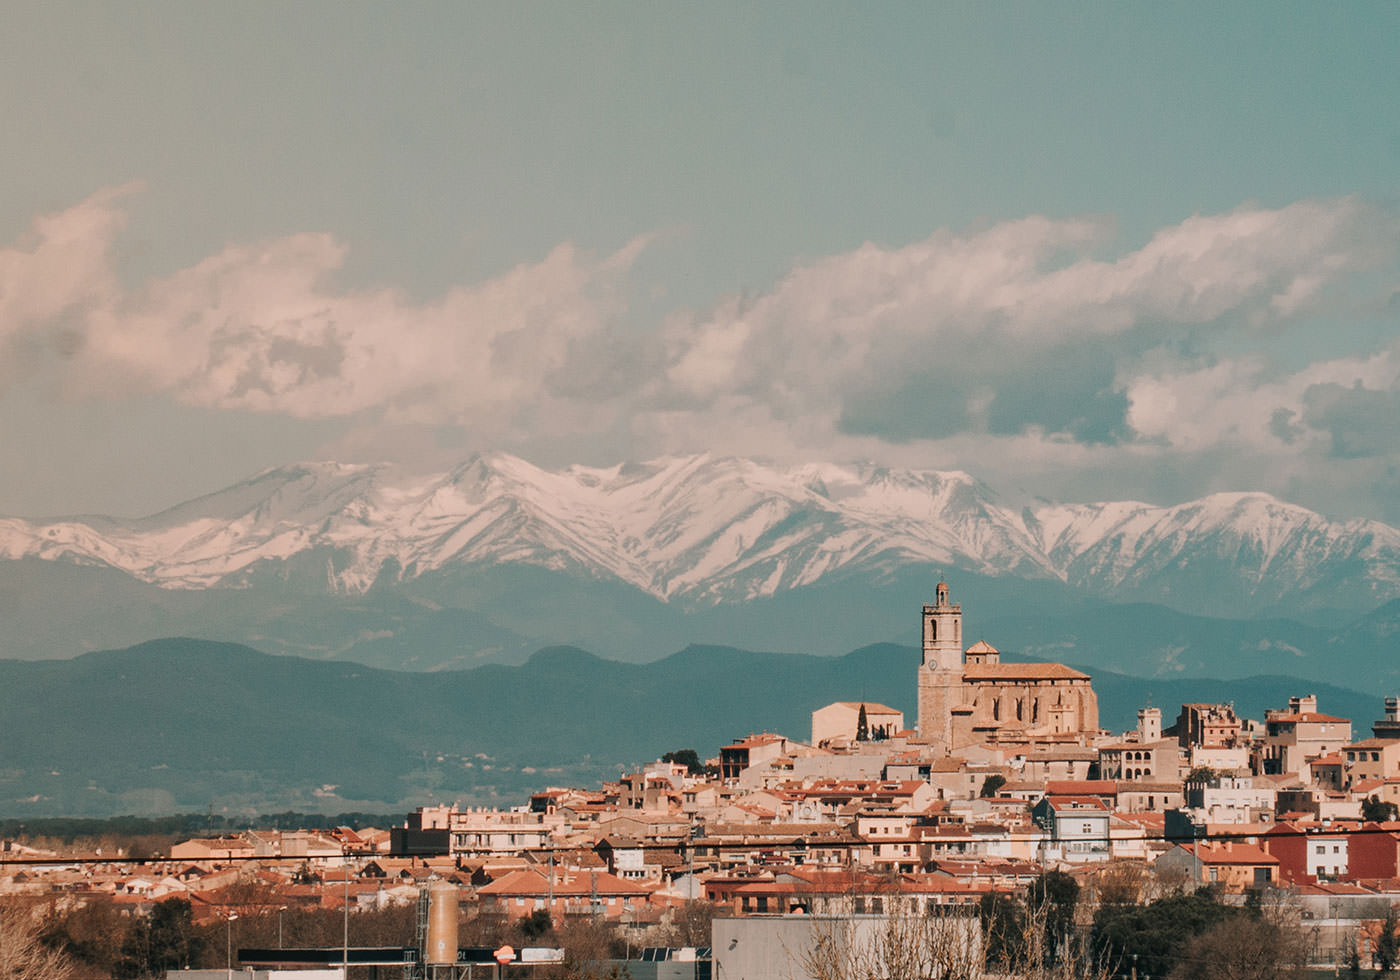 Girona with the Pyrenees mountains in the background